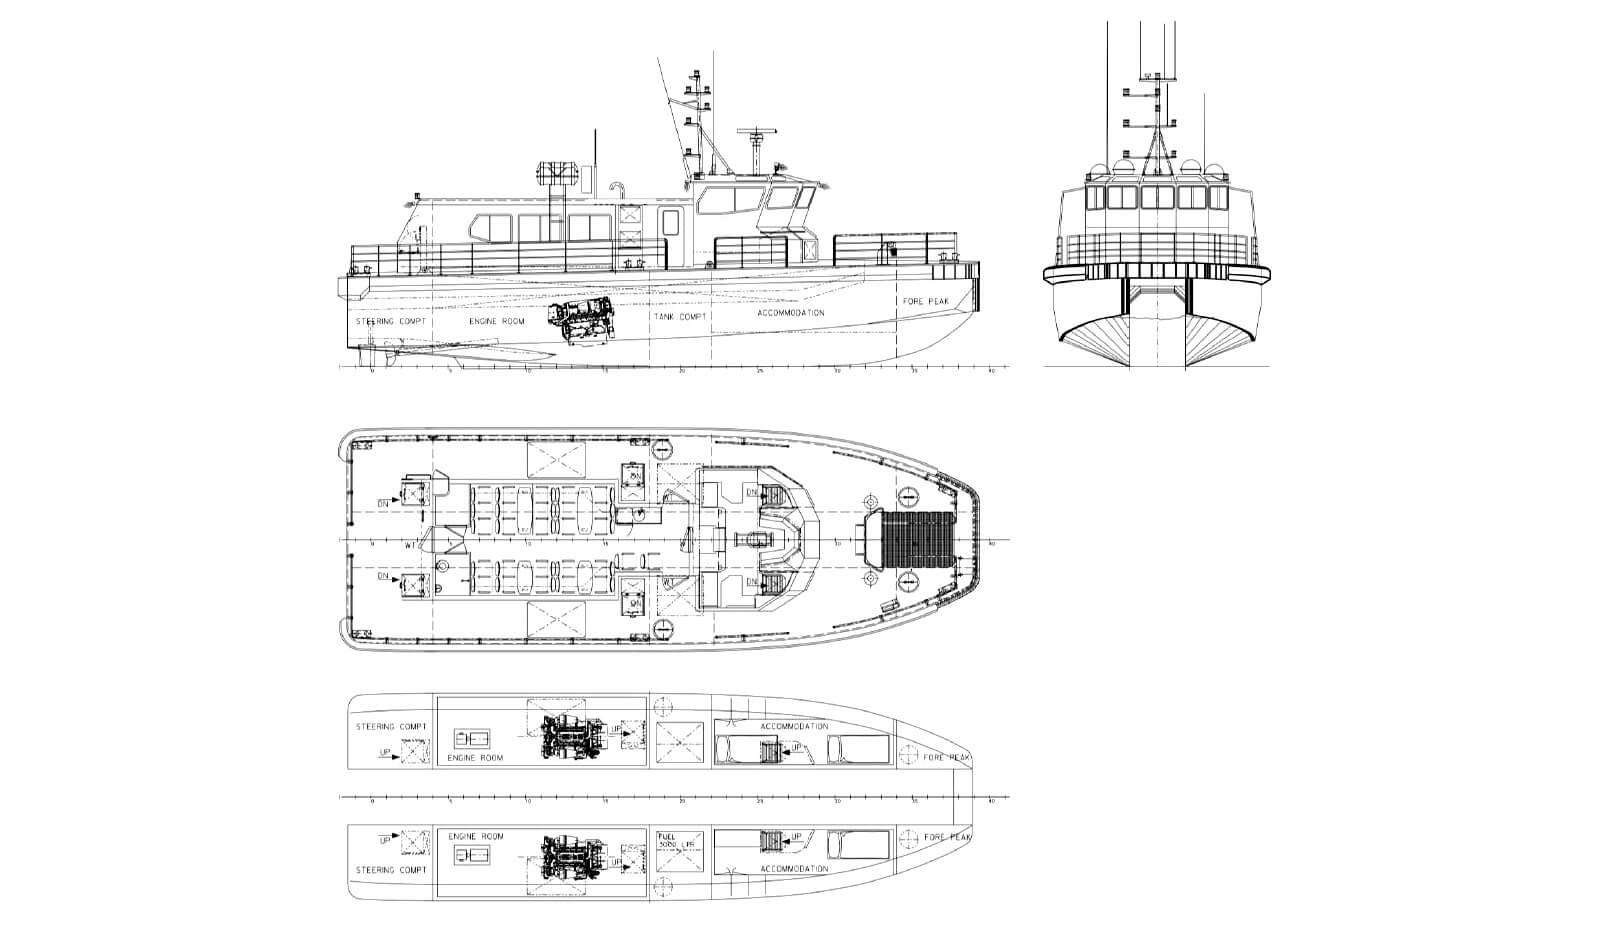 06630 Windfarm Support Passenger Catamaran drawing